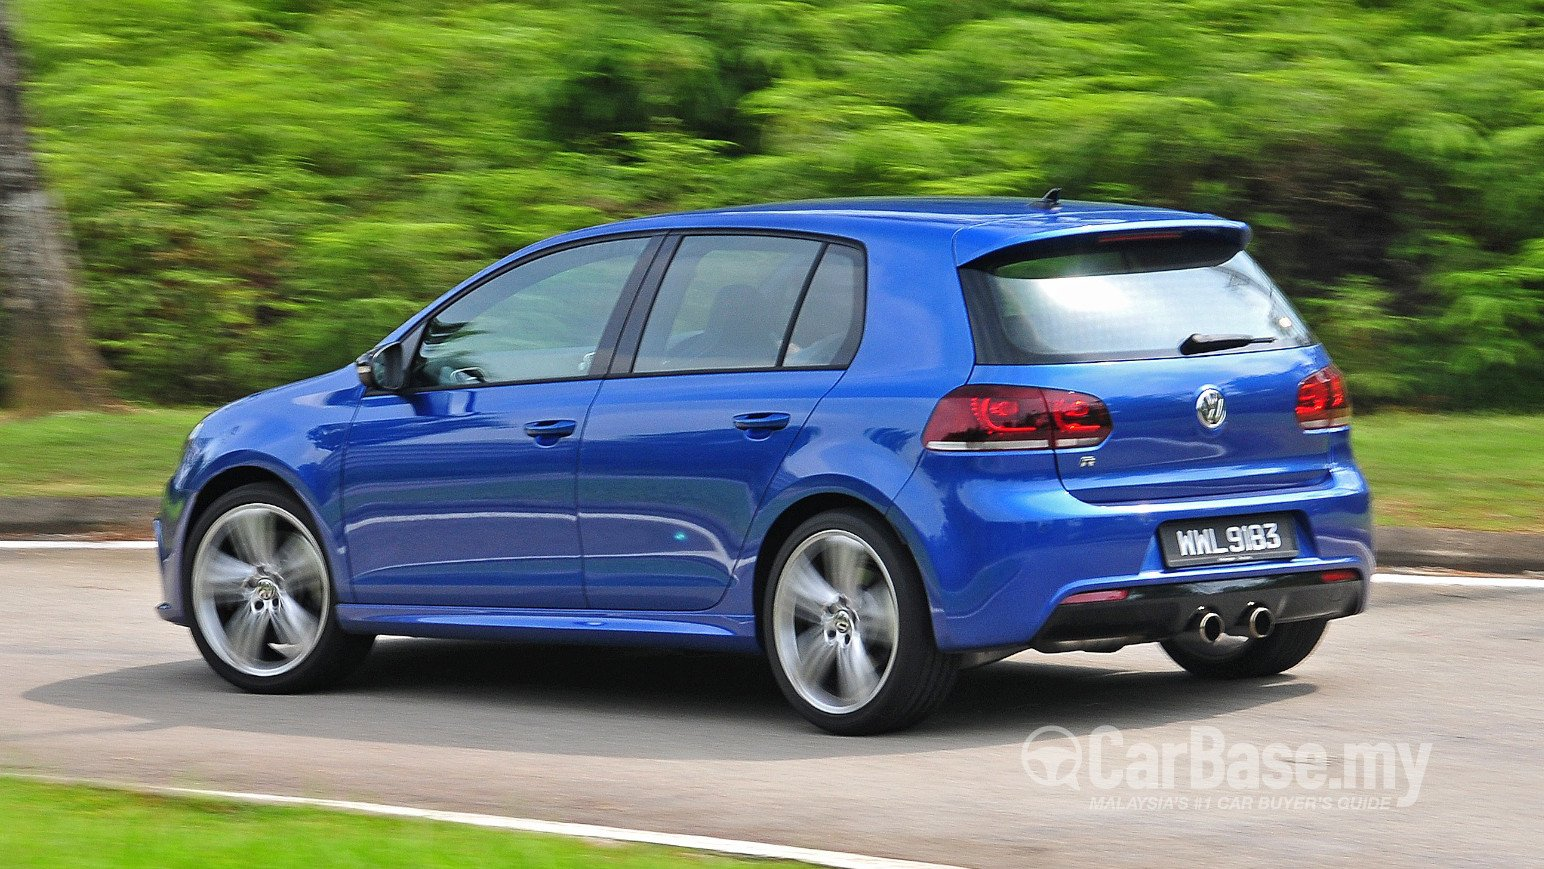 Volkswagen Golf R Mk6 R (2012) Exterior Image #9978 in Malaysia